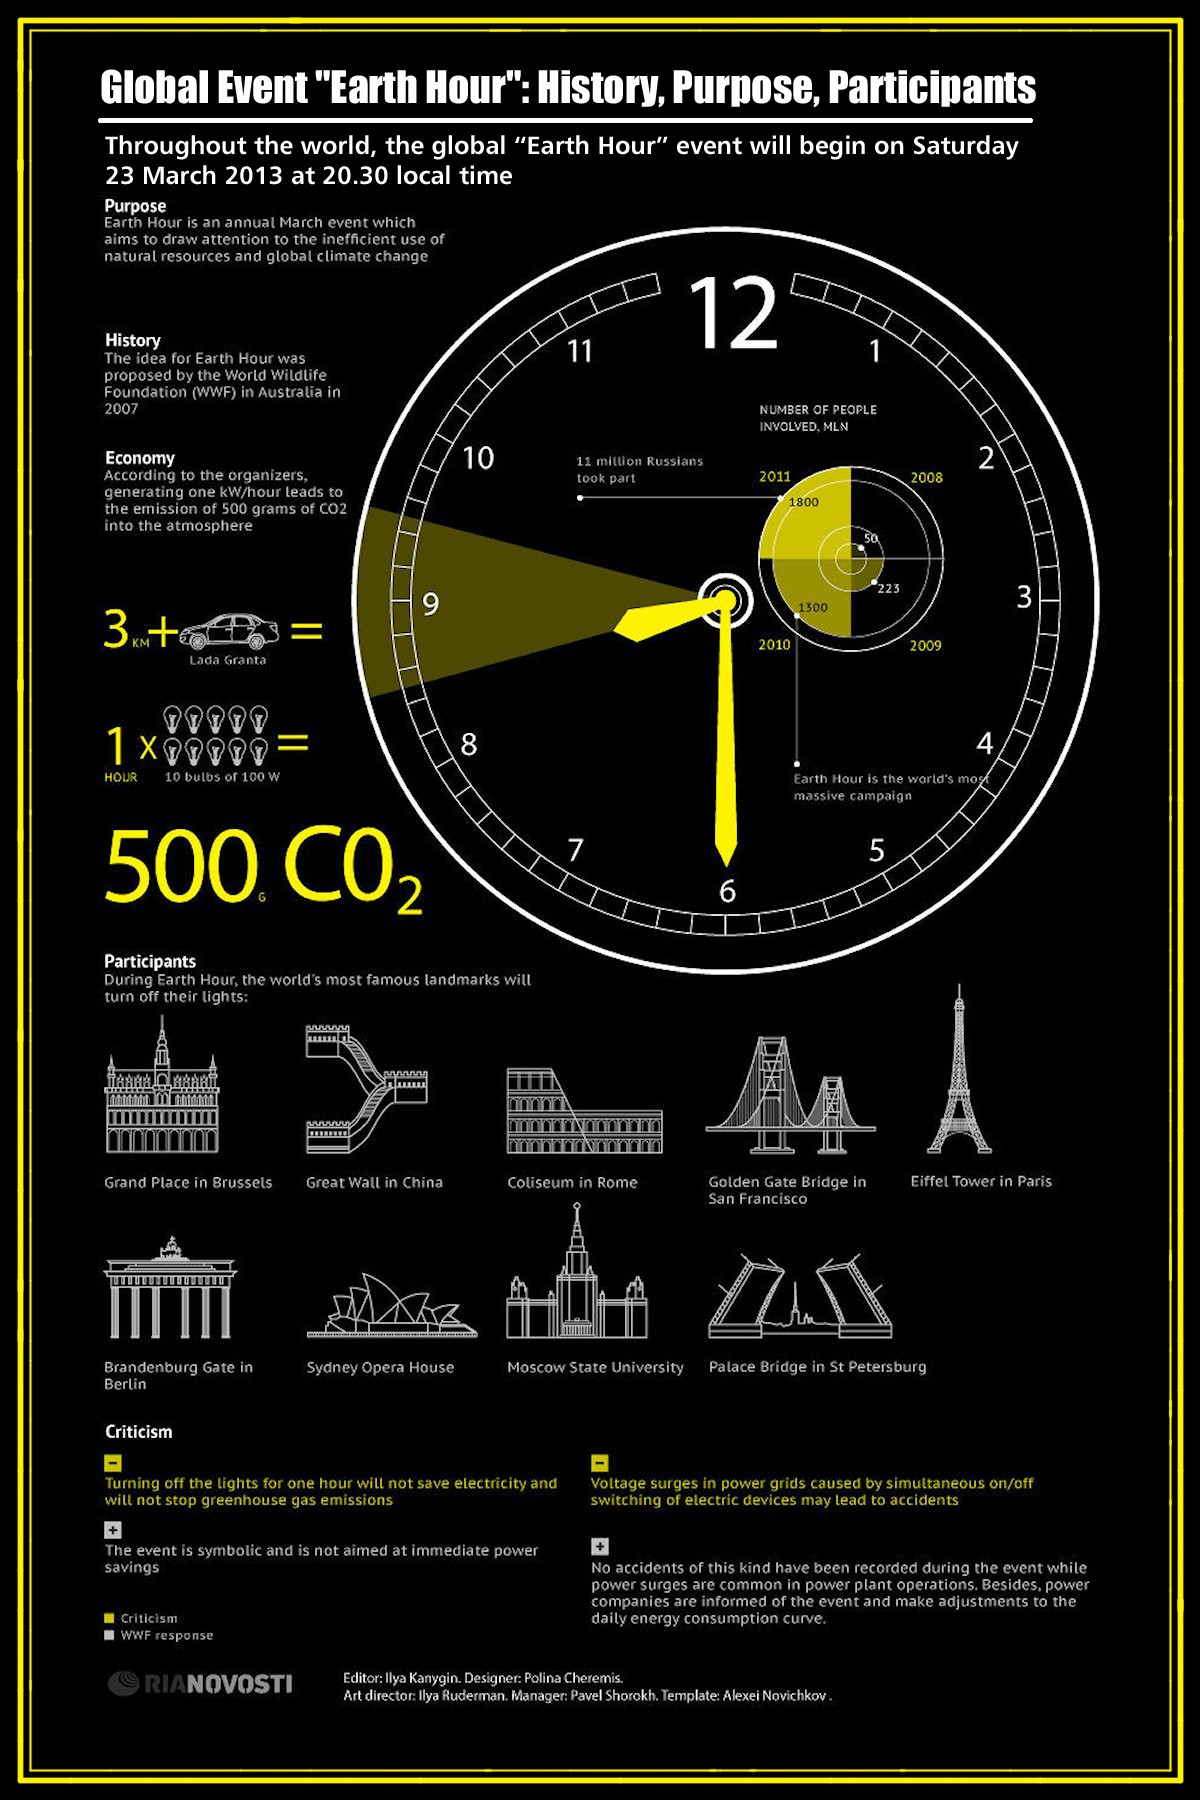 00 RIA-Novosti Infographics. Global Event 'Earth Hour'. History, Purpose, Participants. 2013